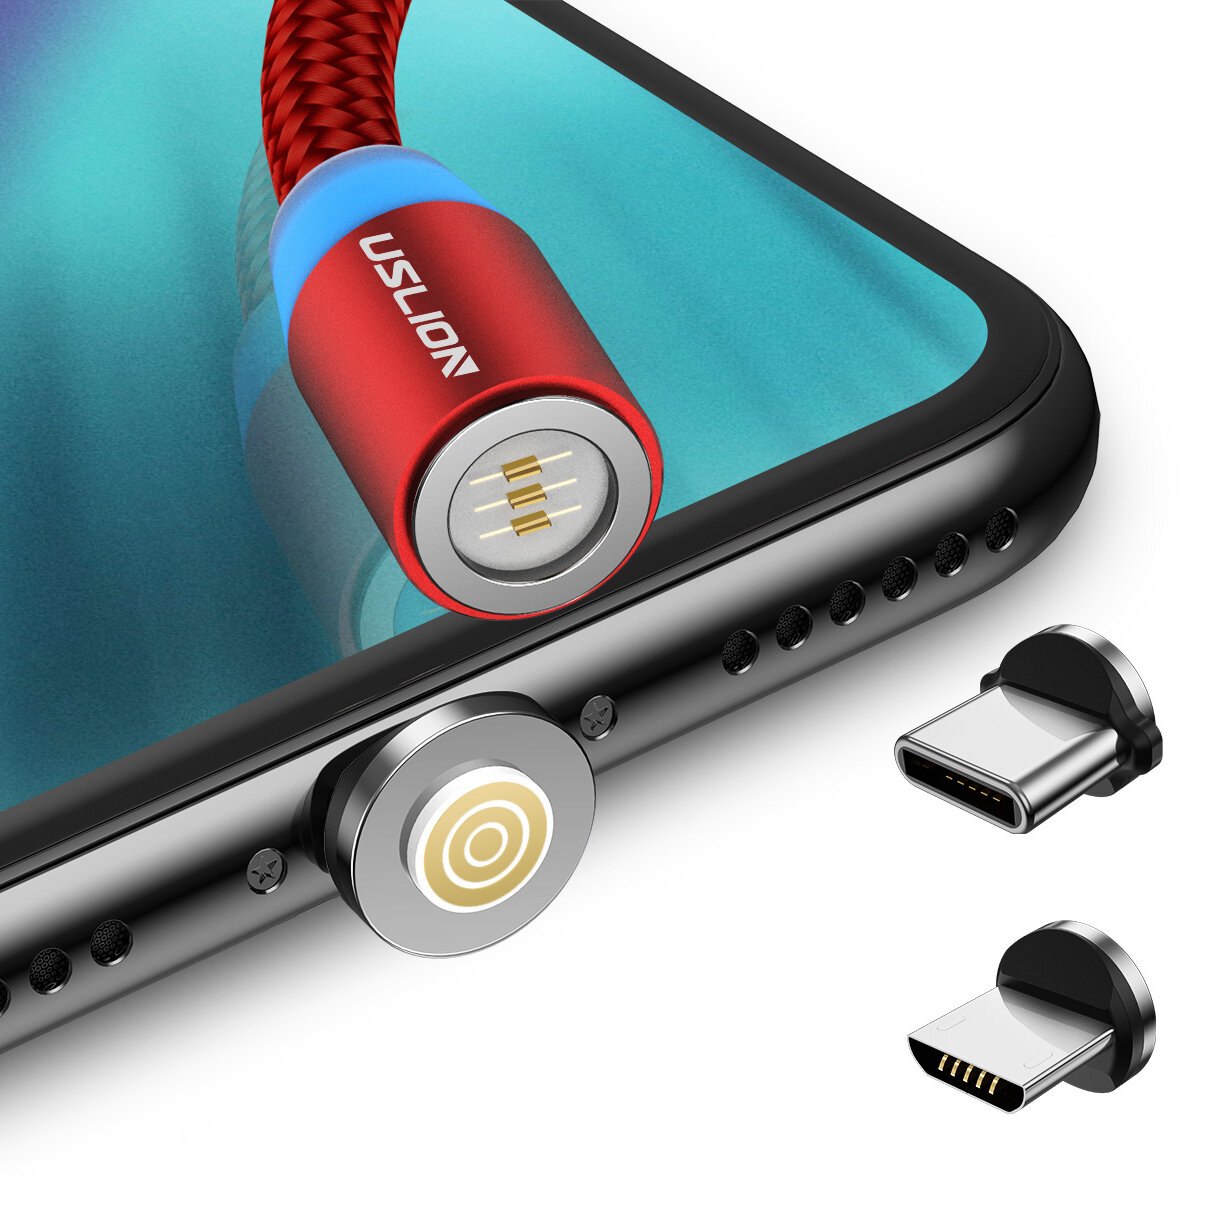 USLION 2.4A 2in1 LED 540° Magnetic Dual Position Game Quick Charge Data Cable for Samsung S10+ Xiaomi Redmi Note8 HUAWEI - 1